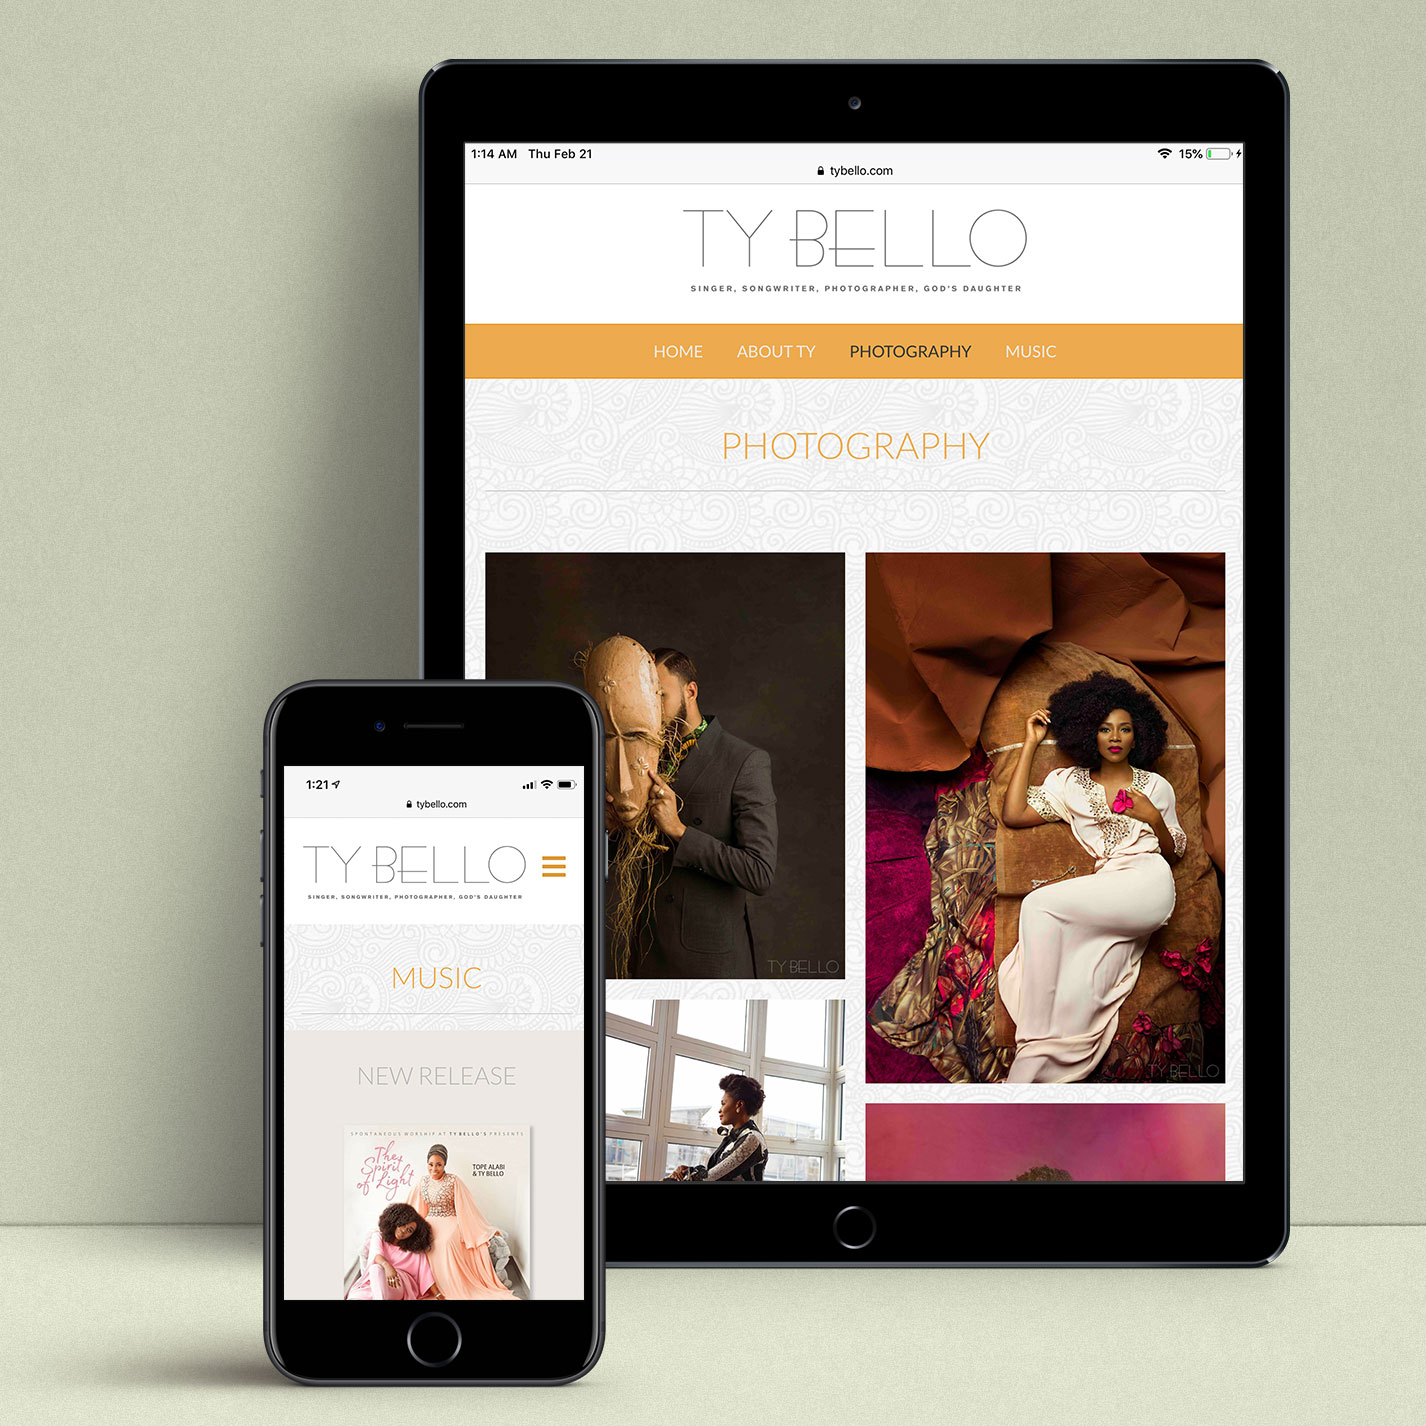 Responsive design for mobile and tablets